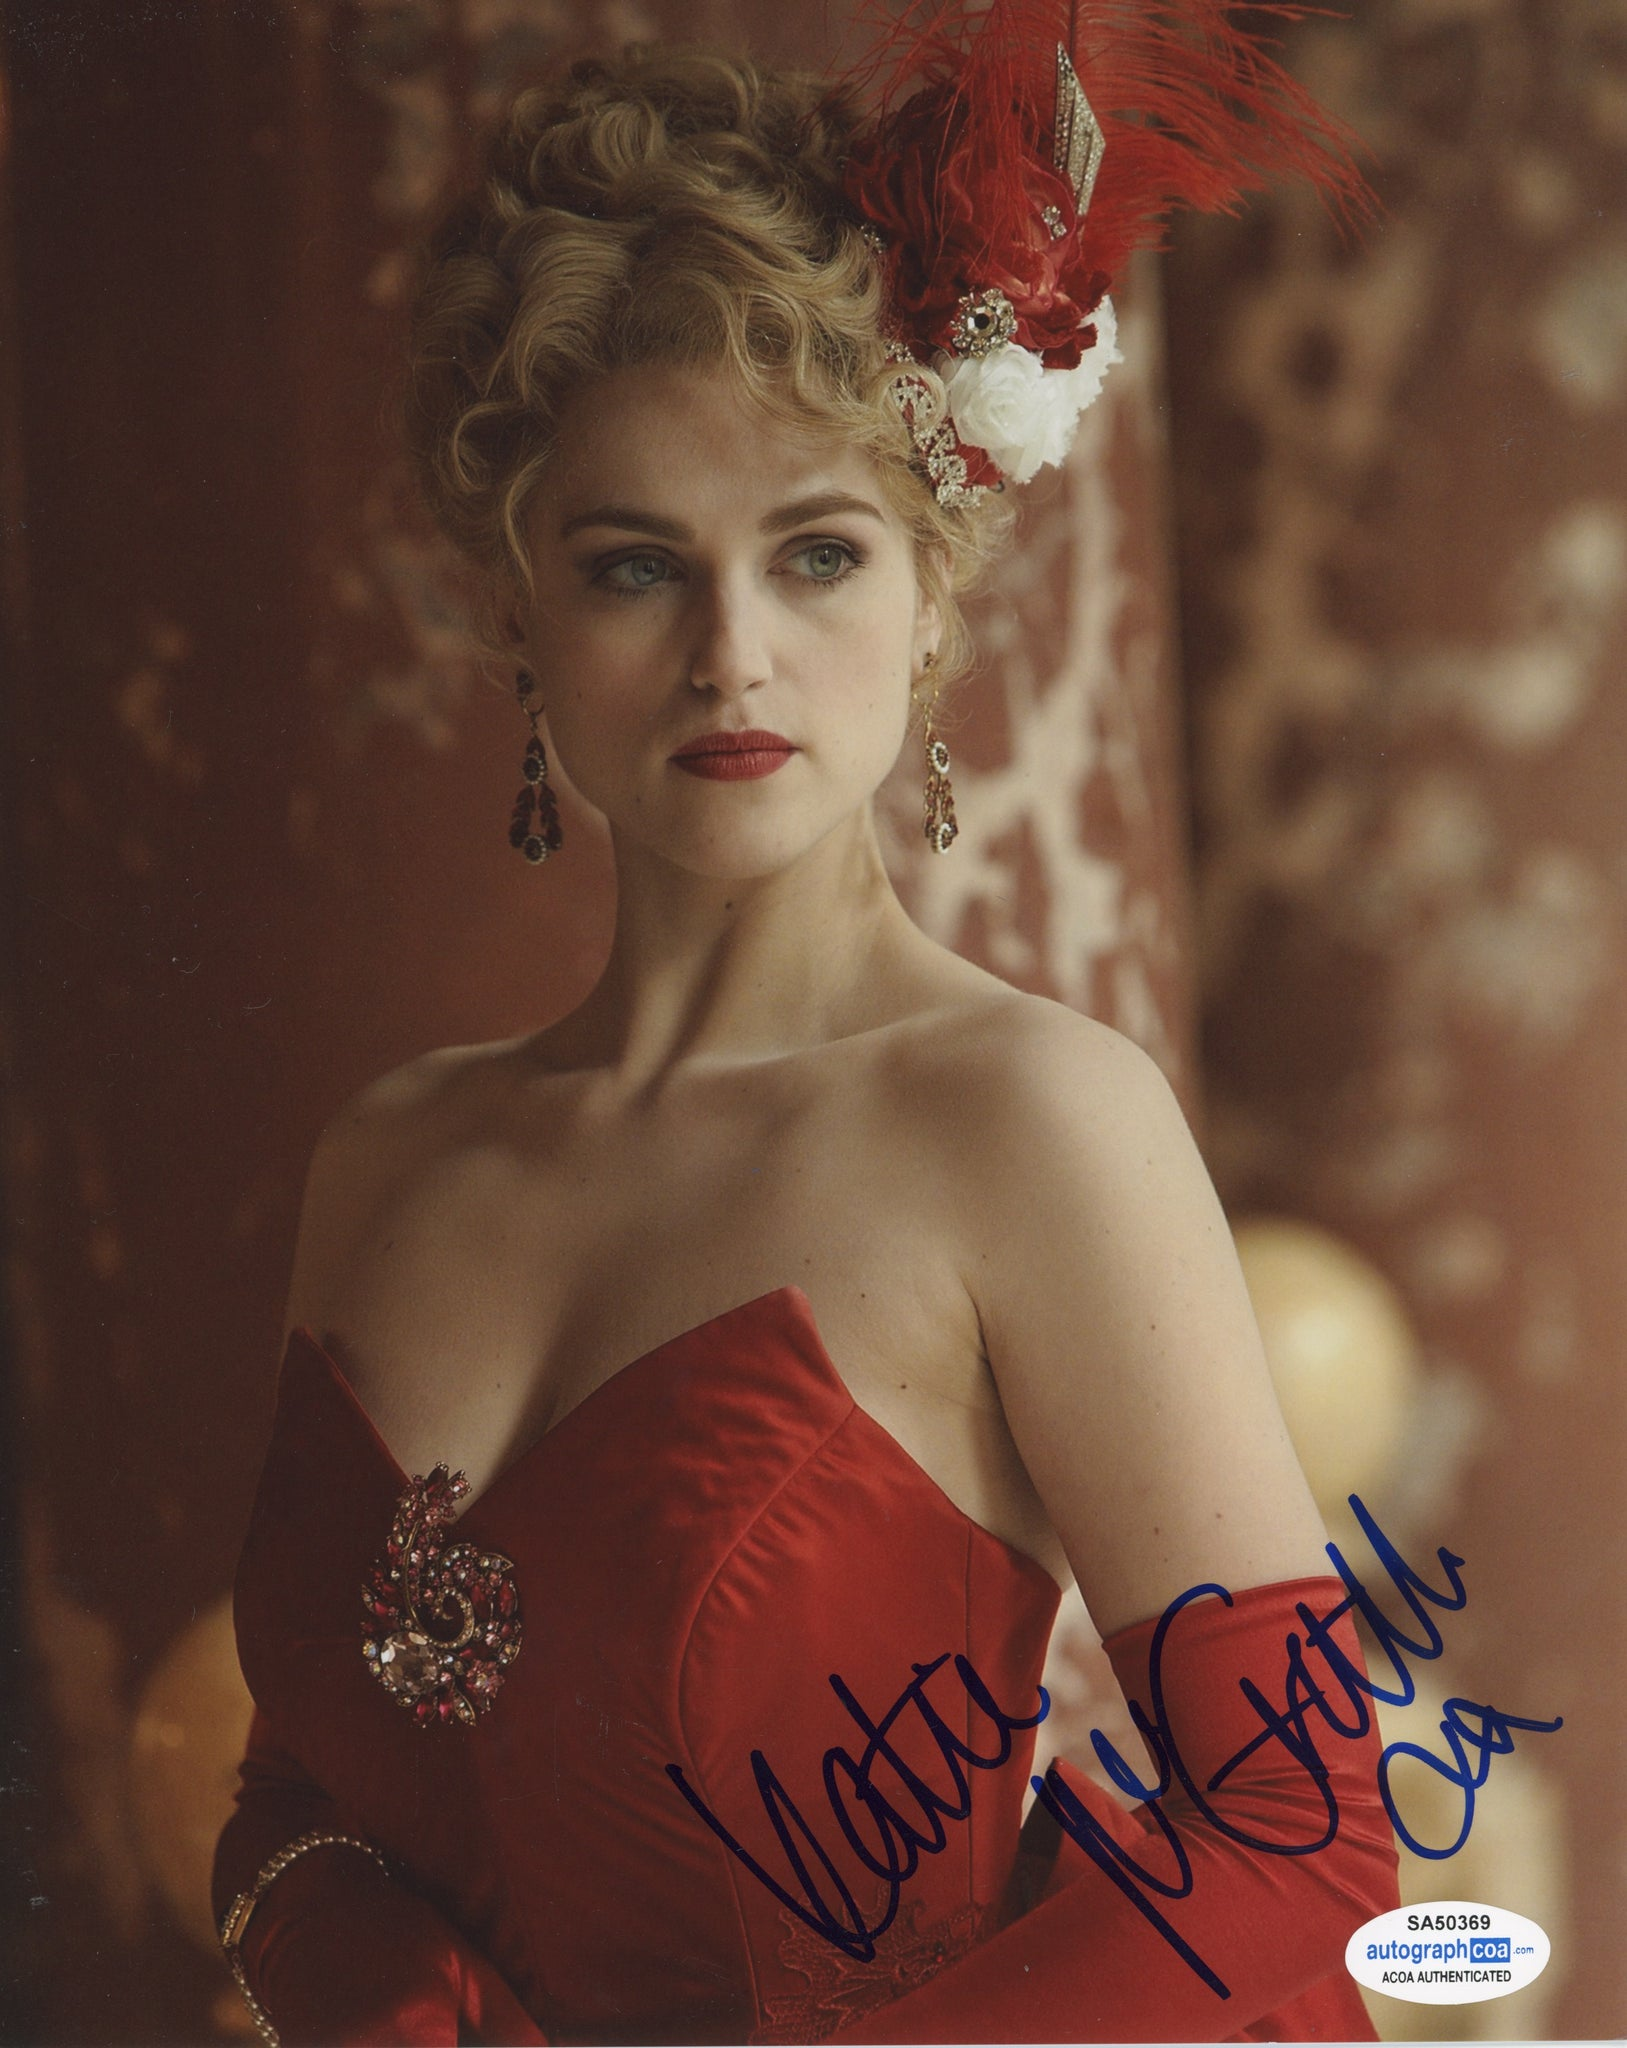 Katie McGrath Dracula Signed Autograph 8x10 Photo ACOA